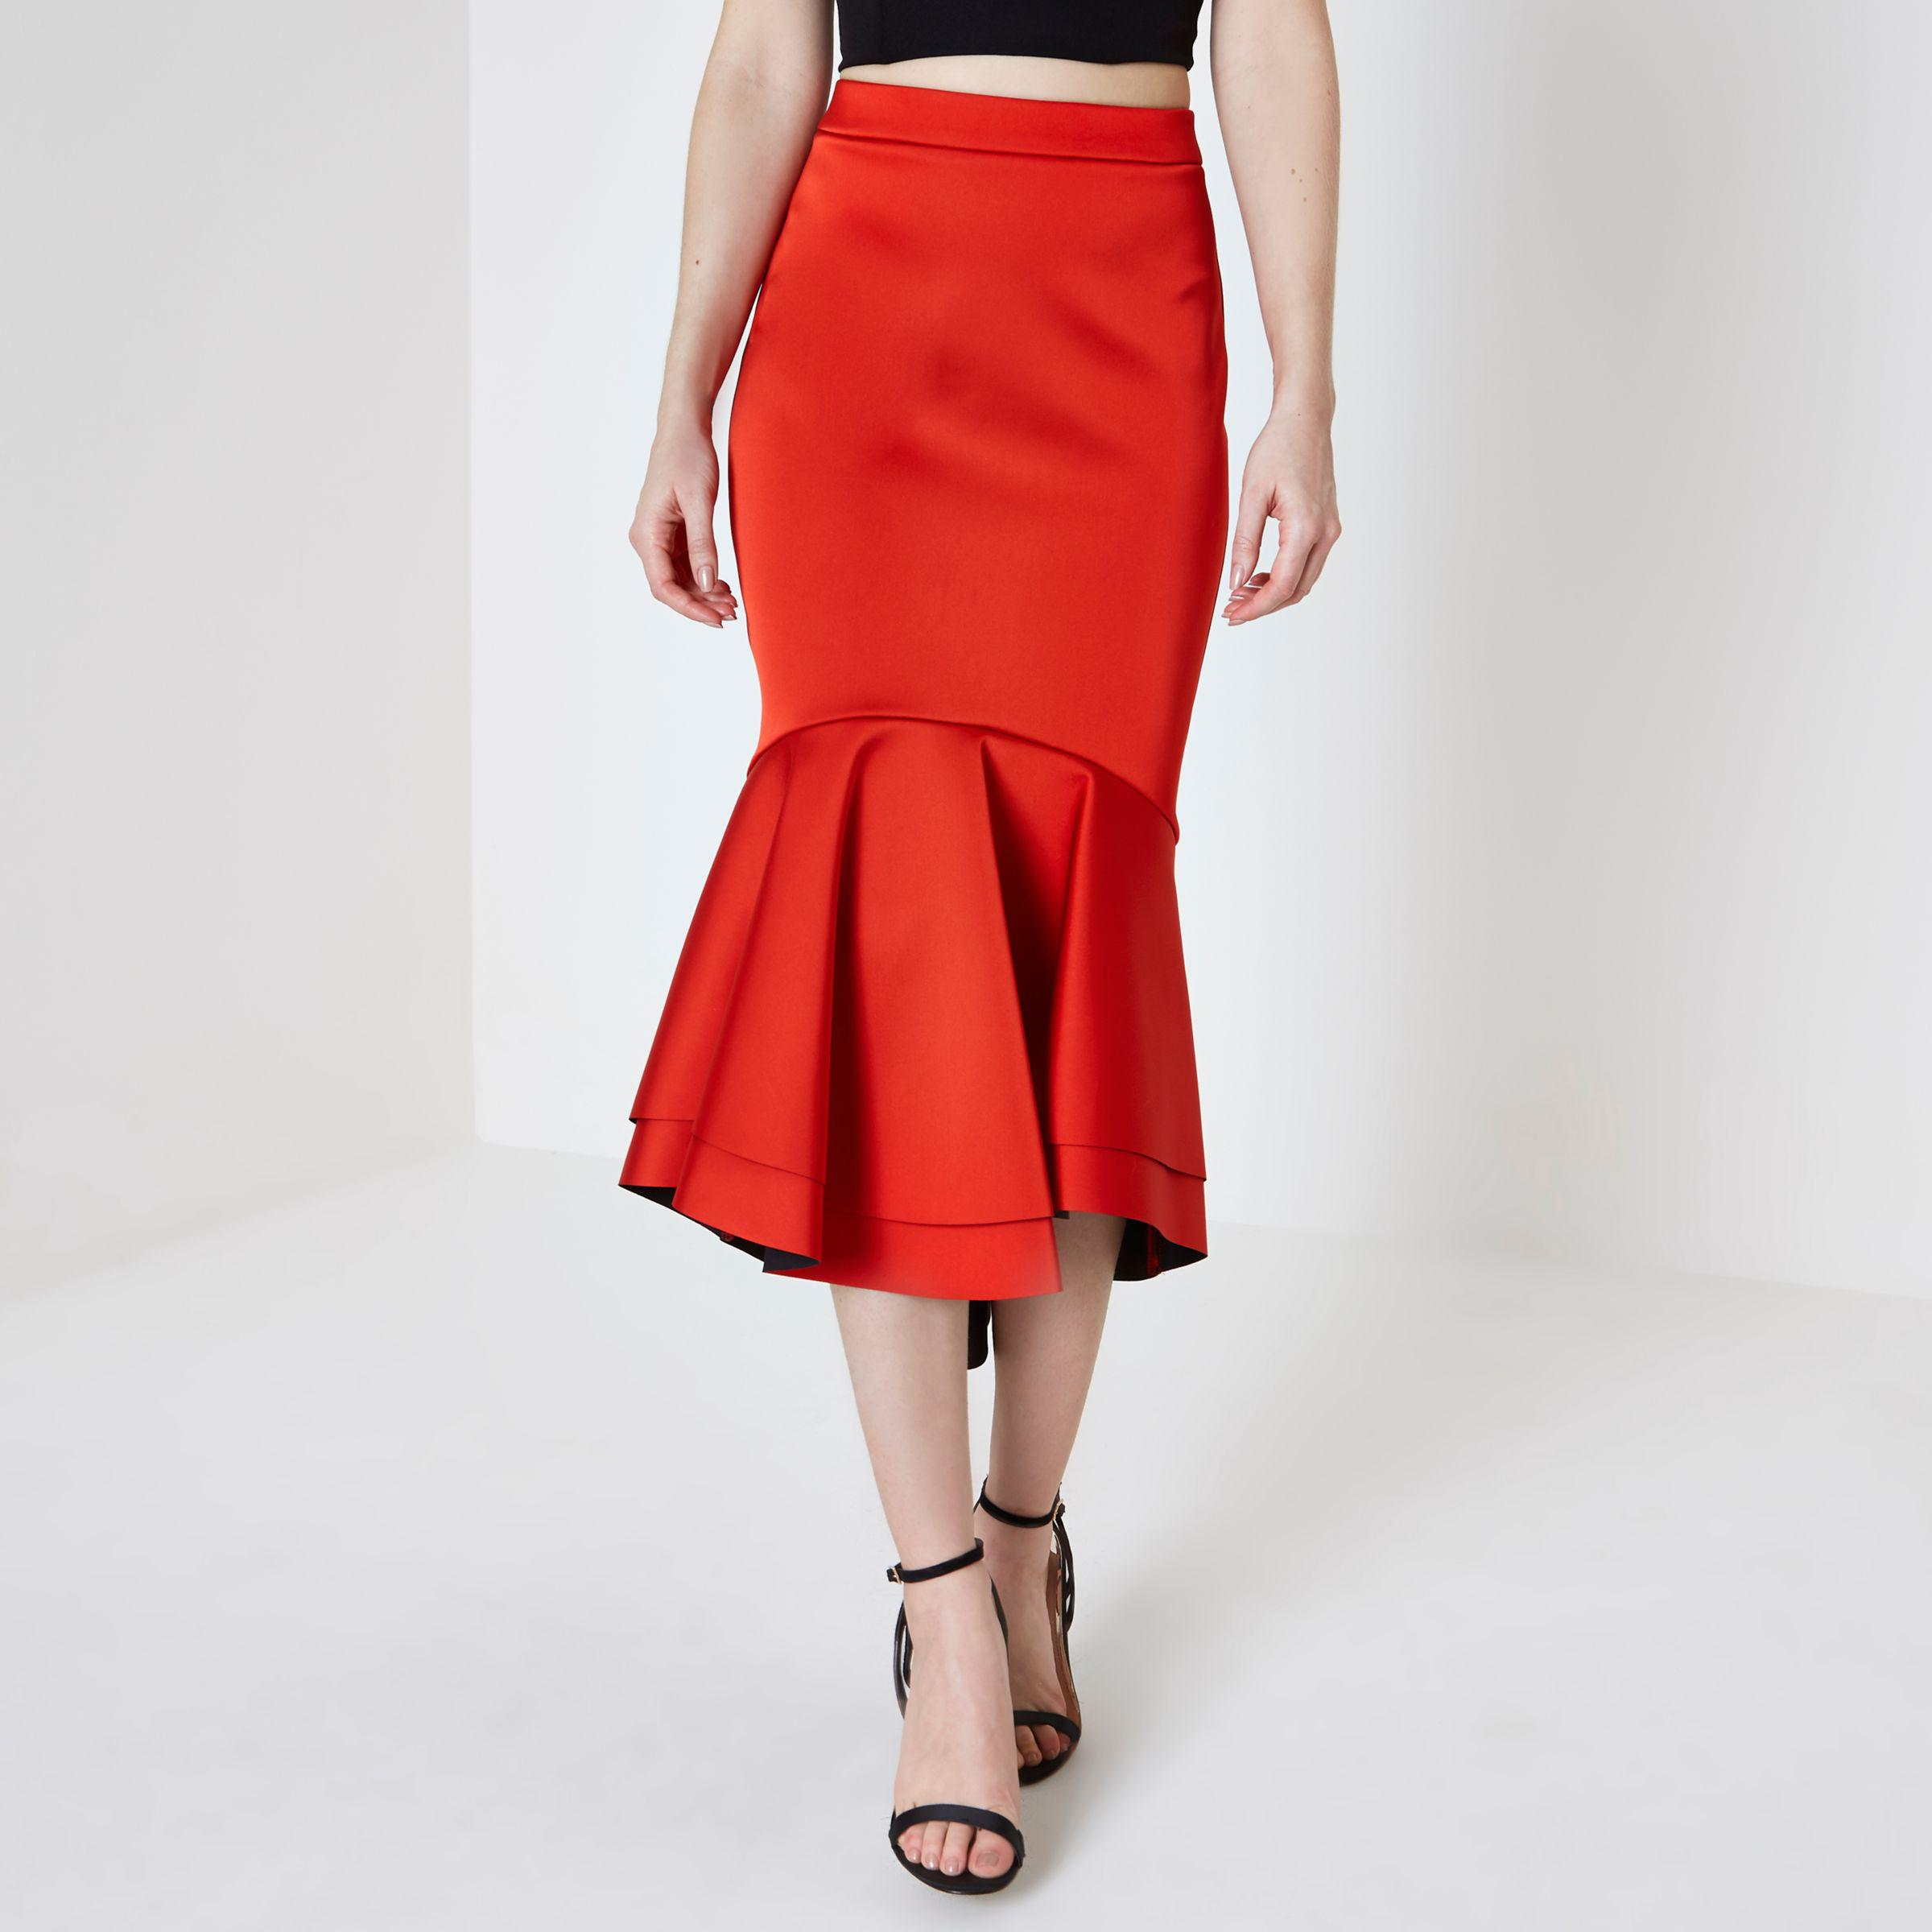 420aa82d77 River Island Red Tiered Fishtail Hem Satin Pencil Skirt in Red - Lyst